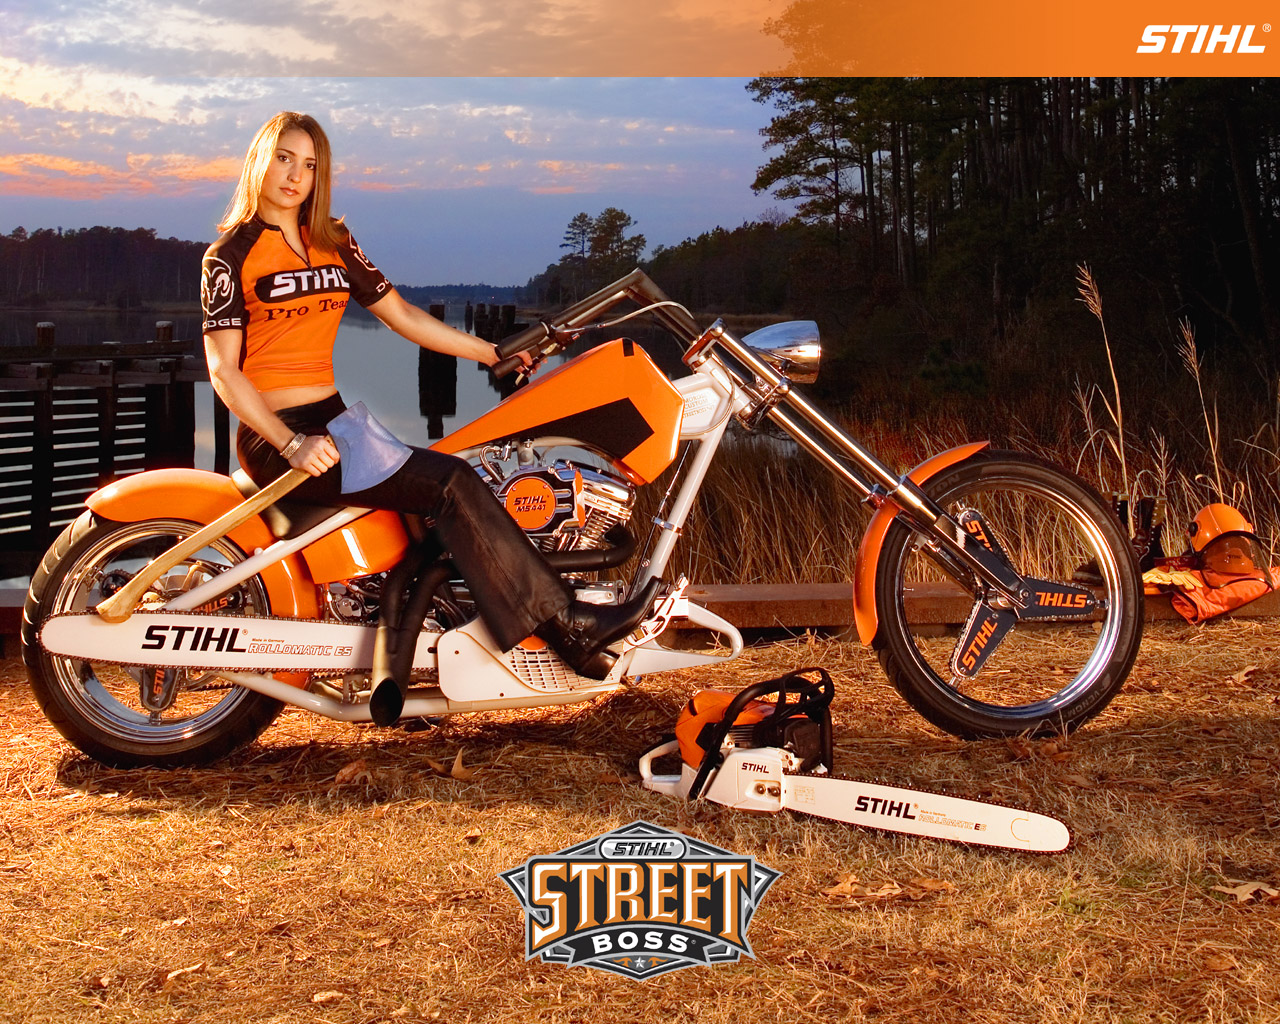 ... stihl wallpaper backgrounds in hd chainsaw wallpaper stihl wallpaper